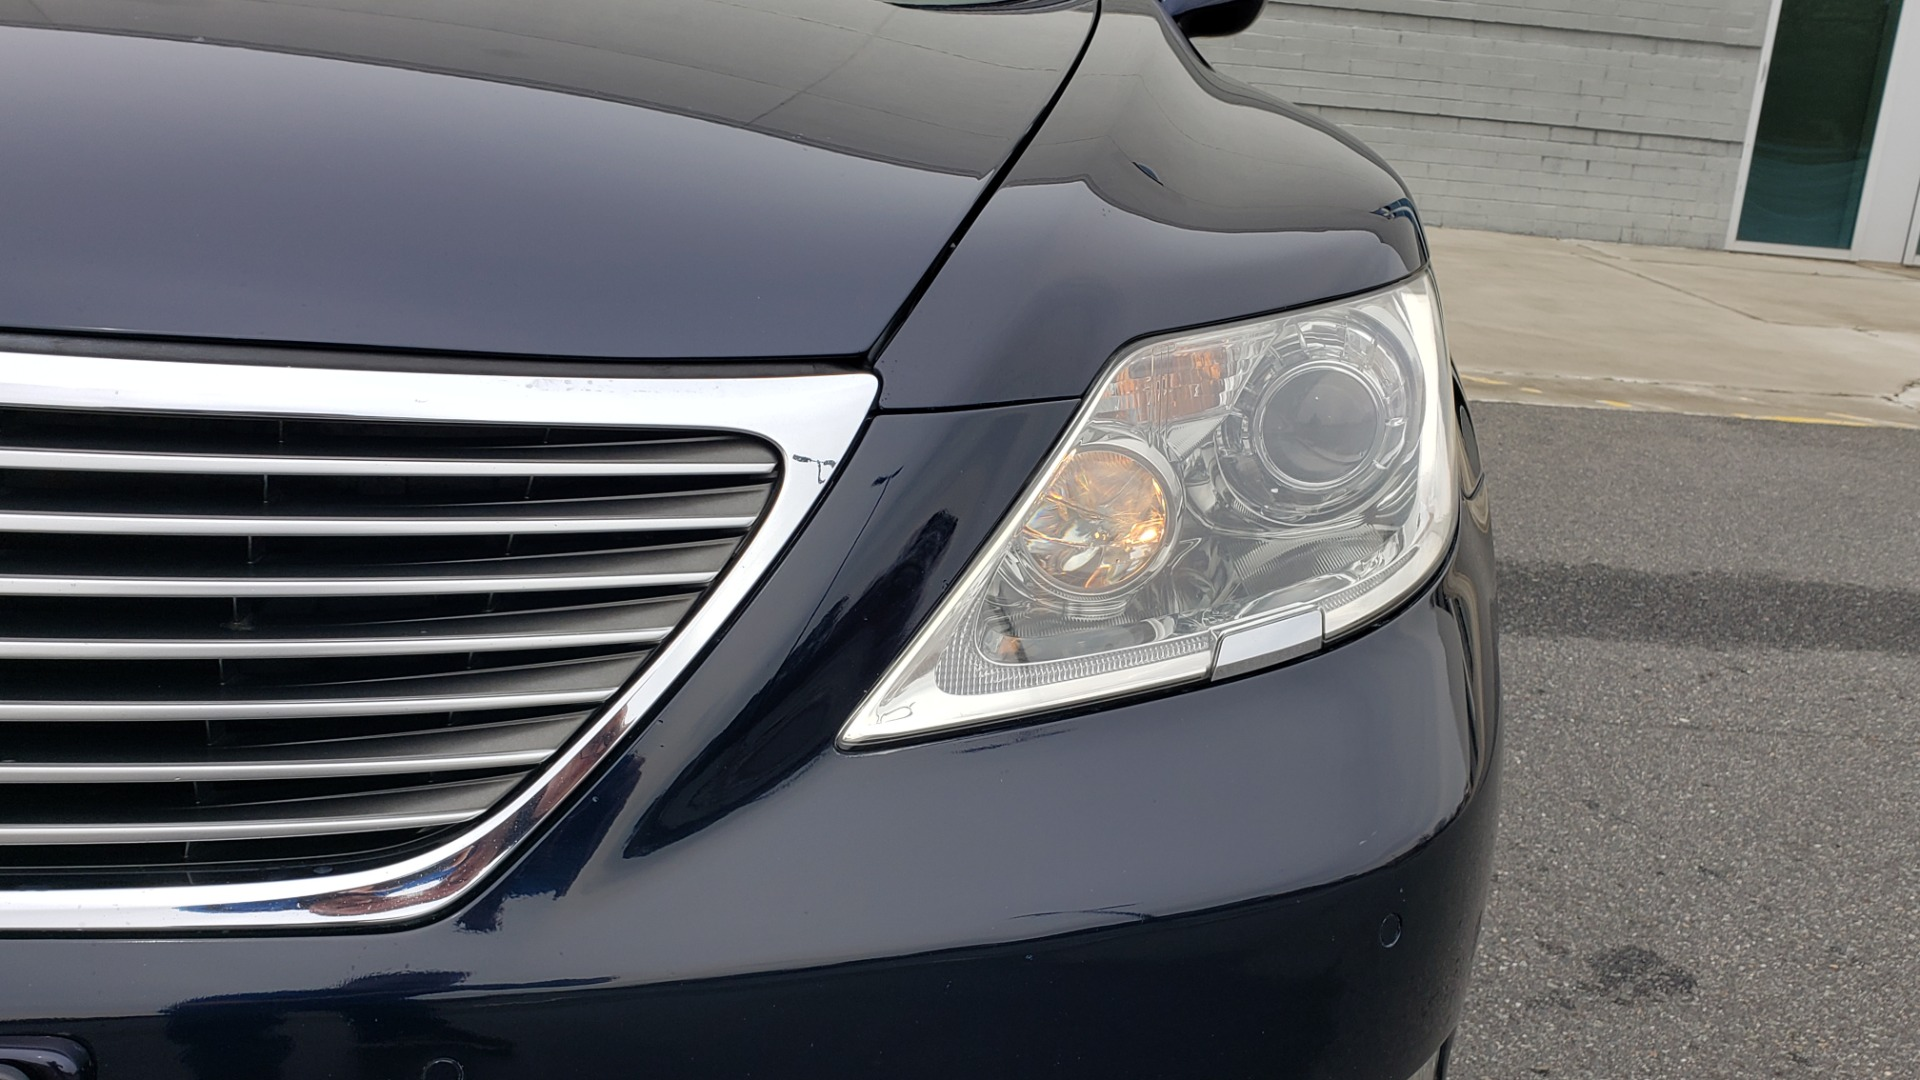 Used 2008 Lexus LS 460 LWB LUXURY SEDAN / MARK LEVINSON / INT PARK ASST / REARVIEW for sale Sold at Formula Imports in Charlotte NC 28227 18